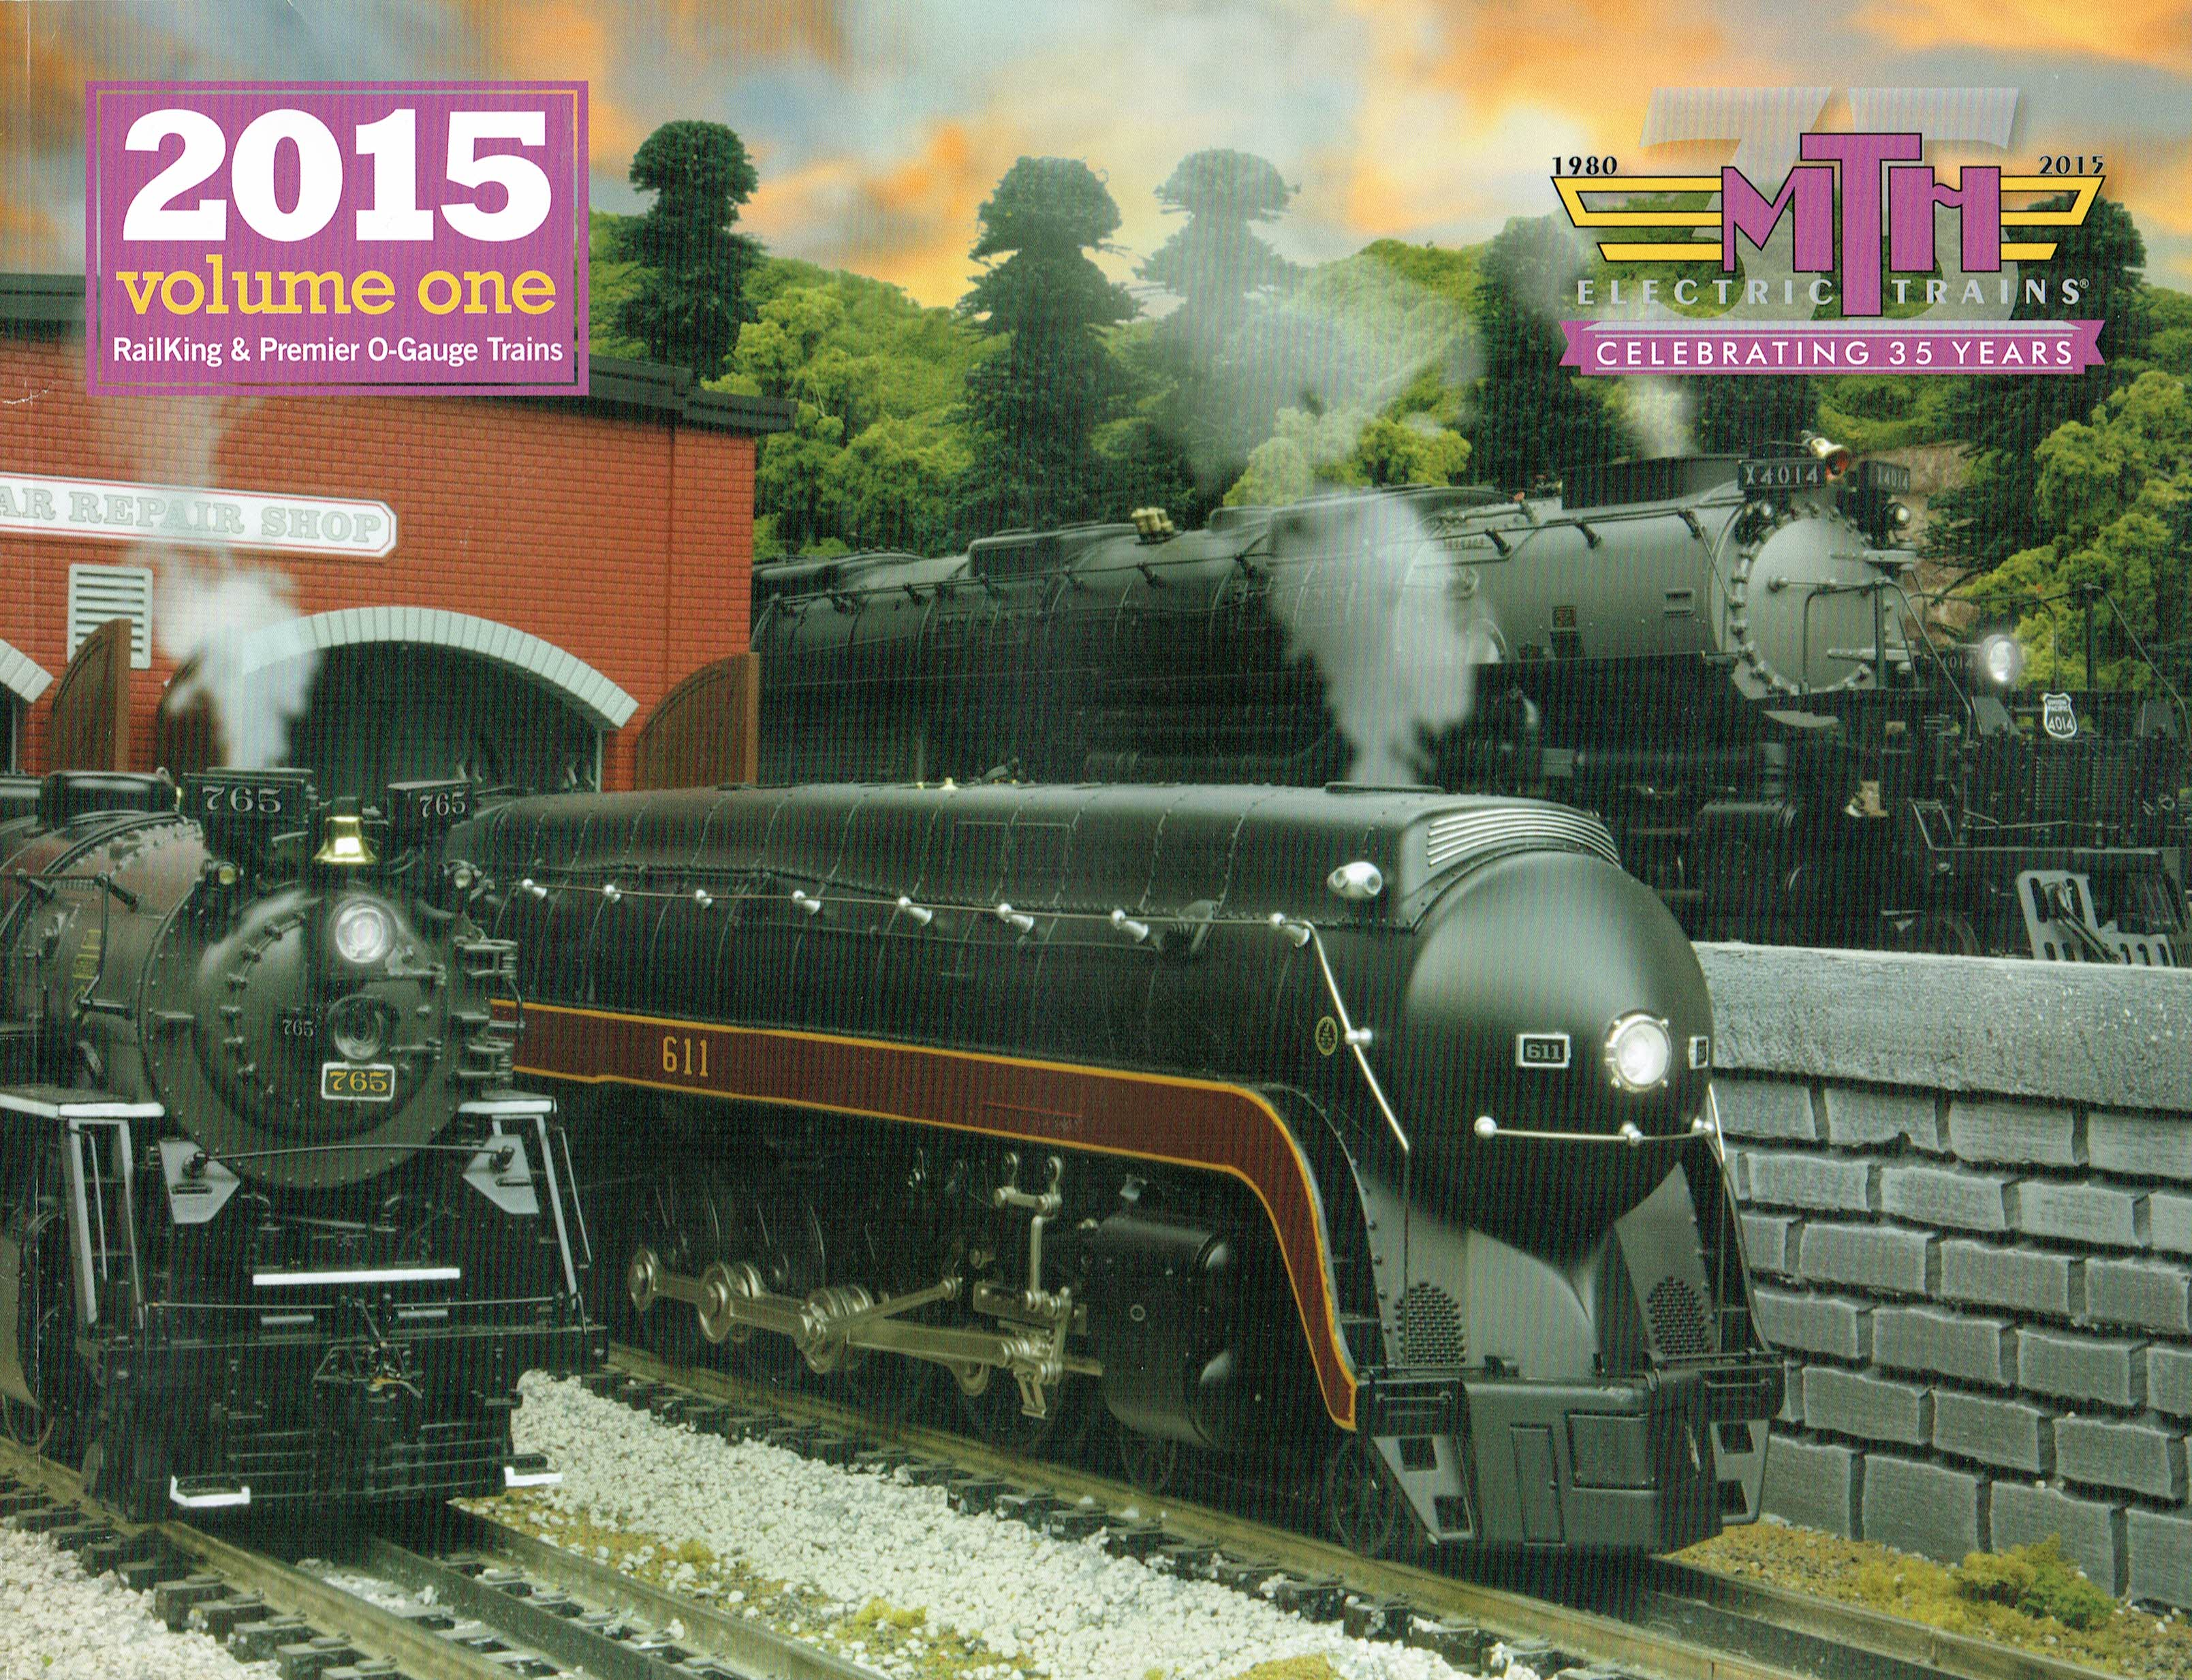 MTH 2015 Volume One Catalog image